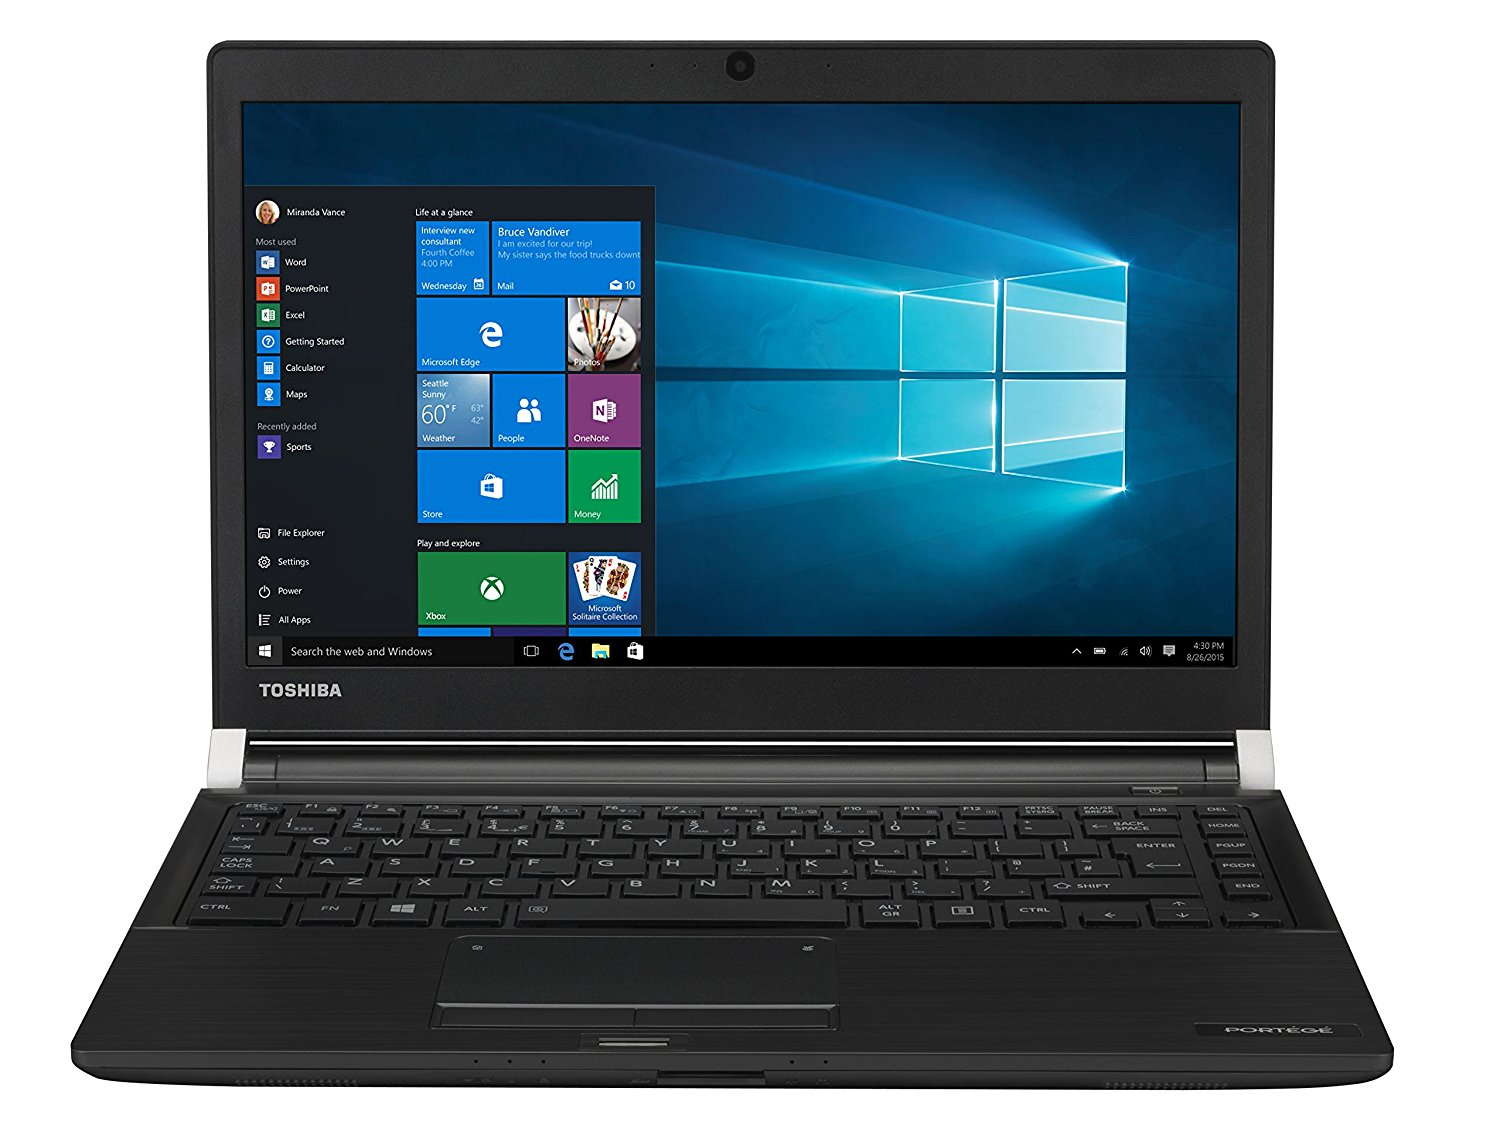 Notebook Toshiba Portege A30-C-1CW 13.3 Full HD Intel Core i5-6200U RAM 8GB SSD 256GB Windows 10 Pro